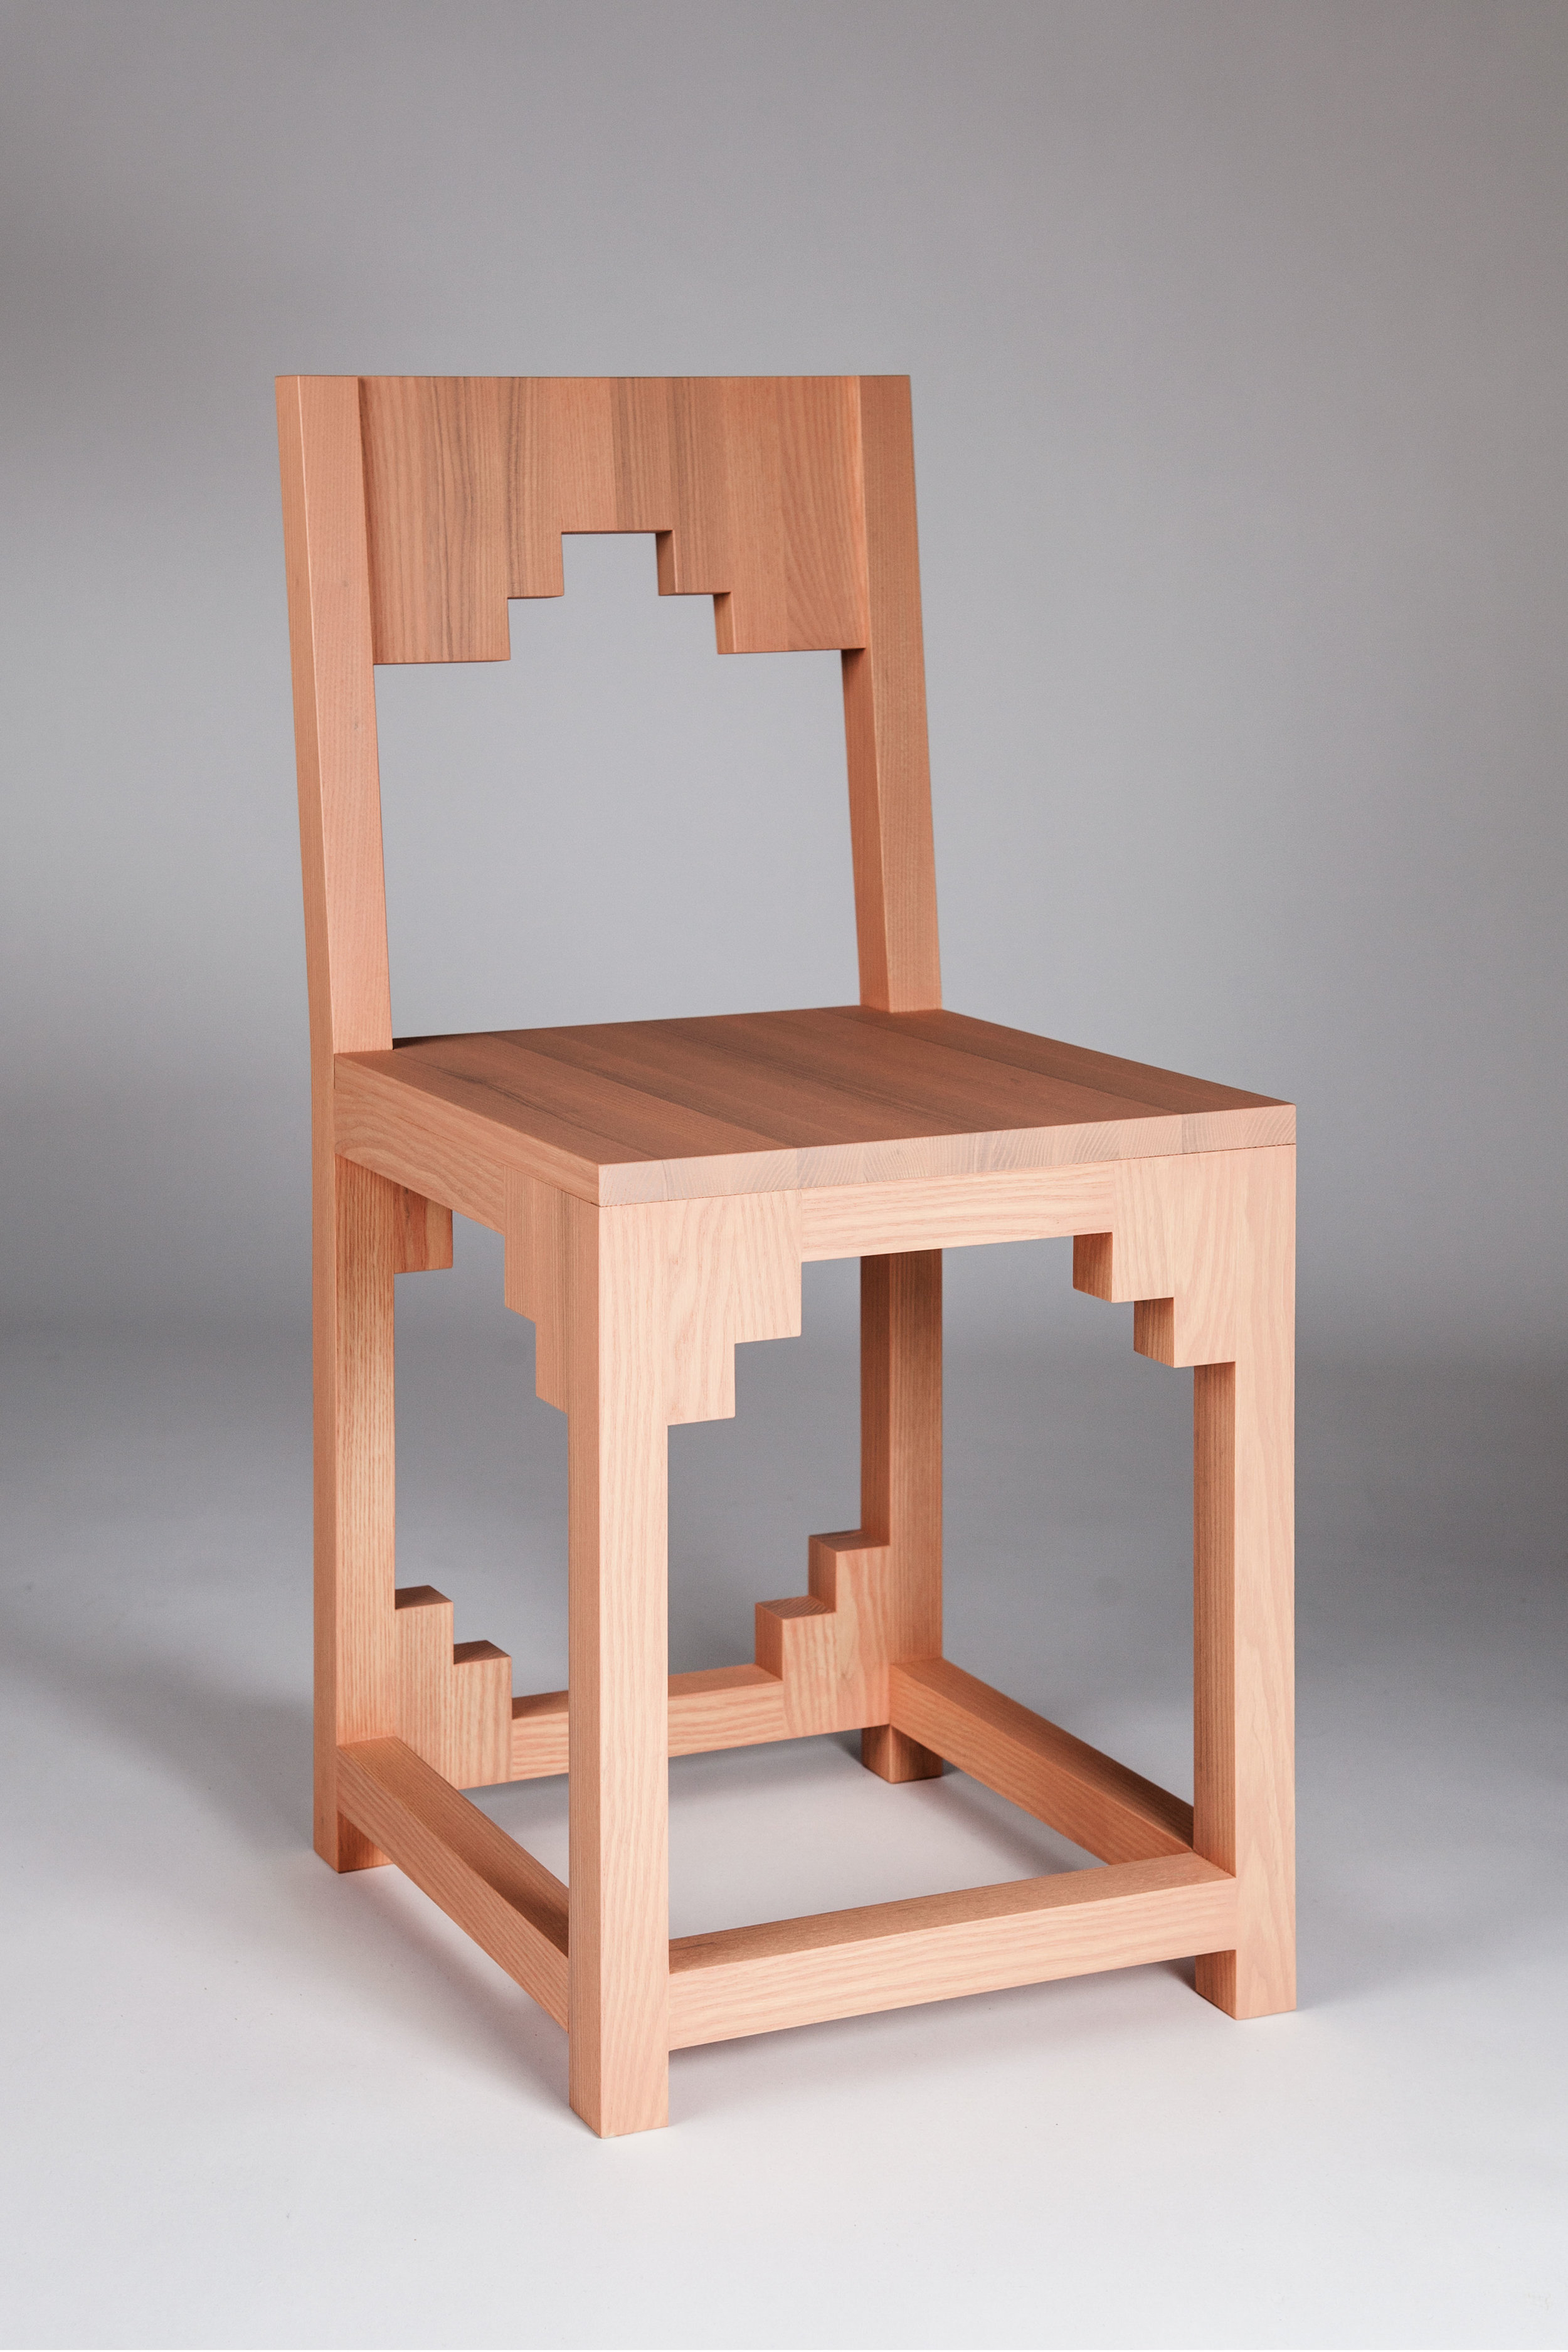 CHAIR_front_by_PetraLilja.jpg